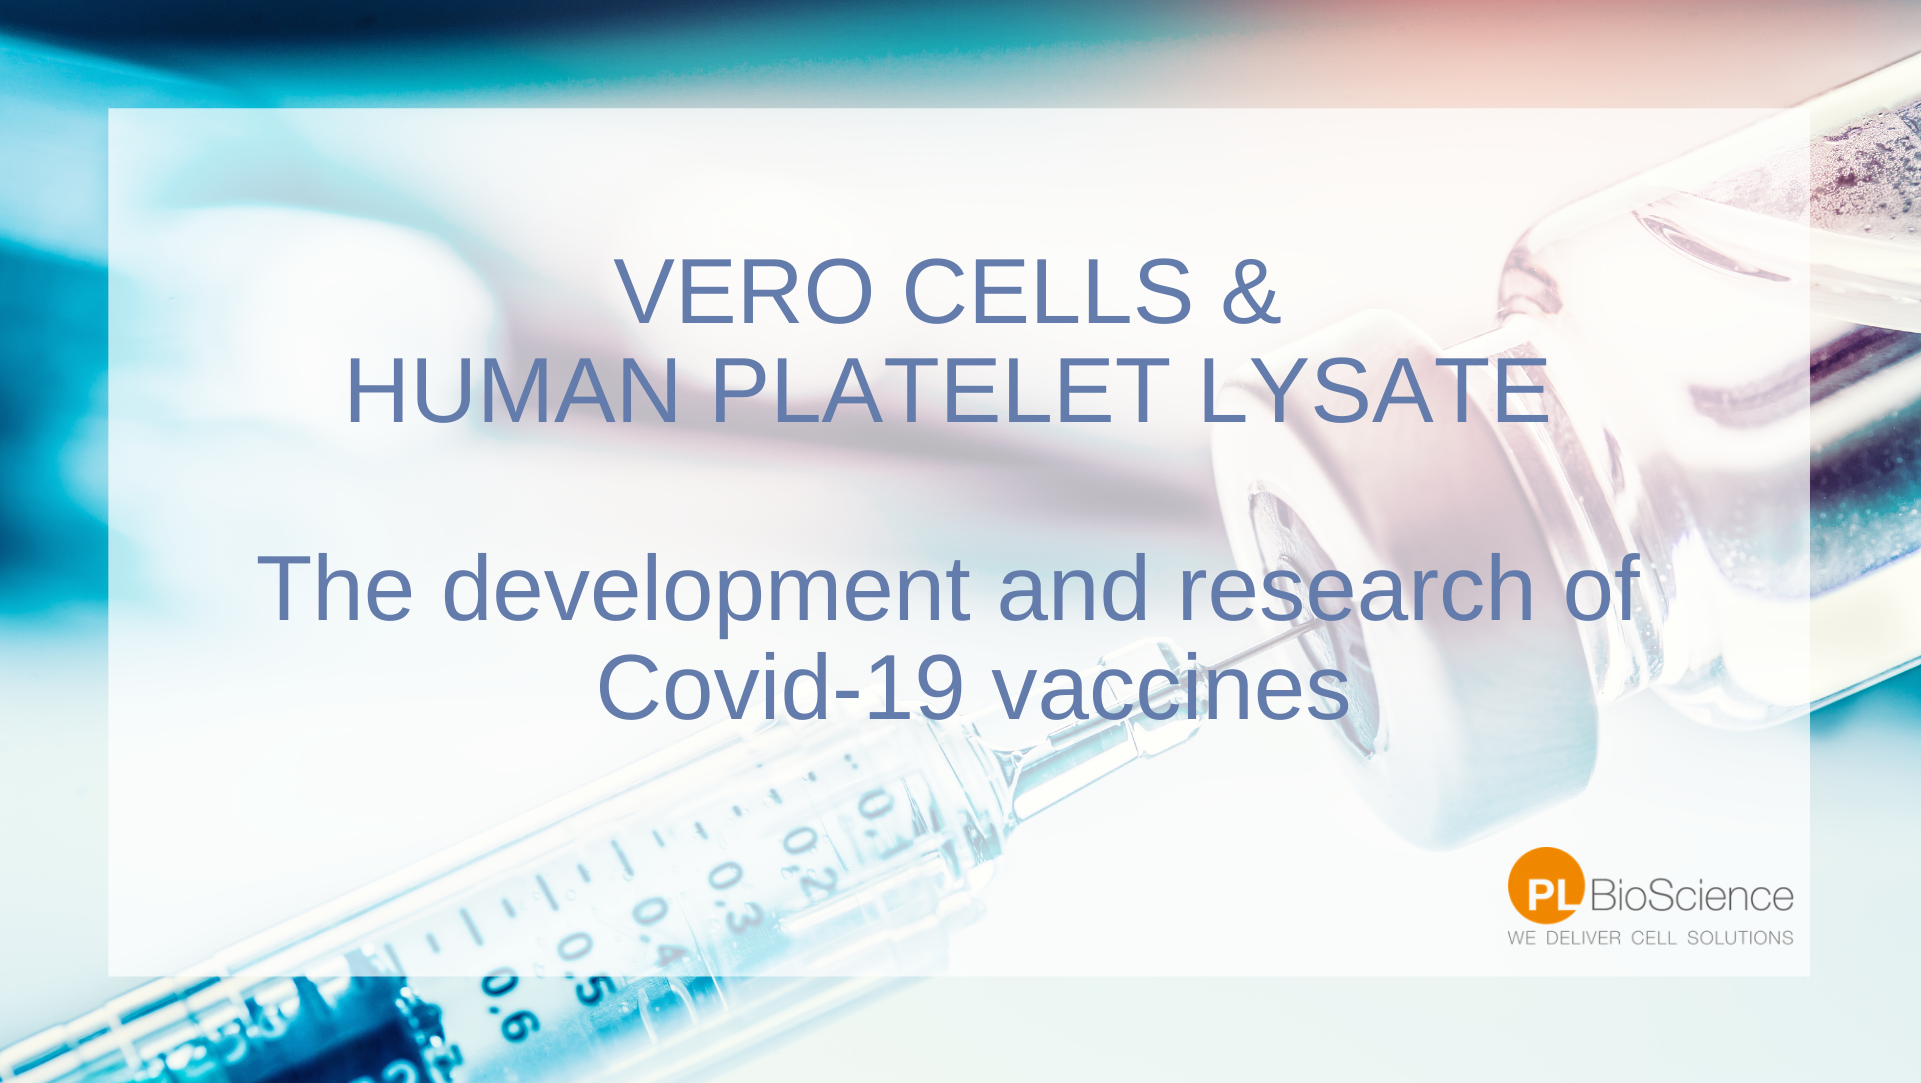 vero cells in covid-19 research and human Platelet Lysate